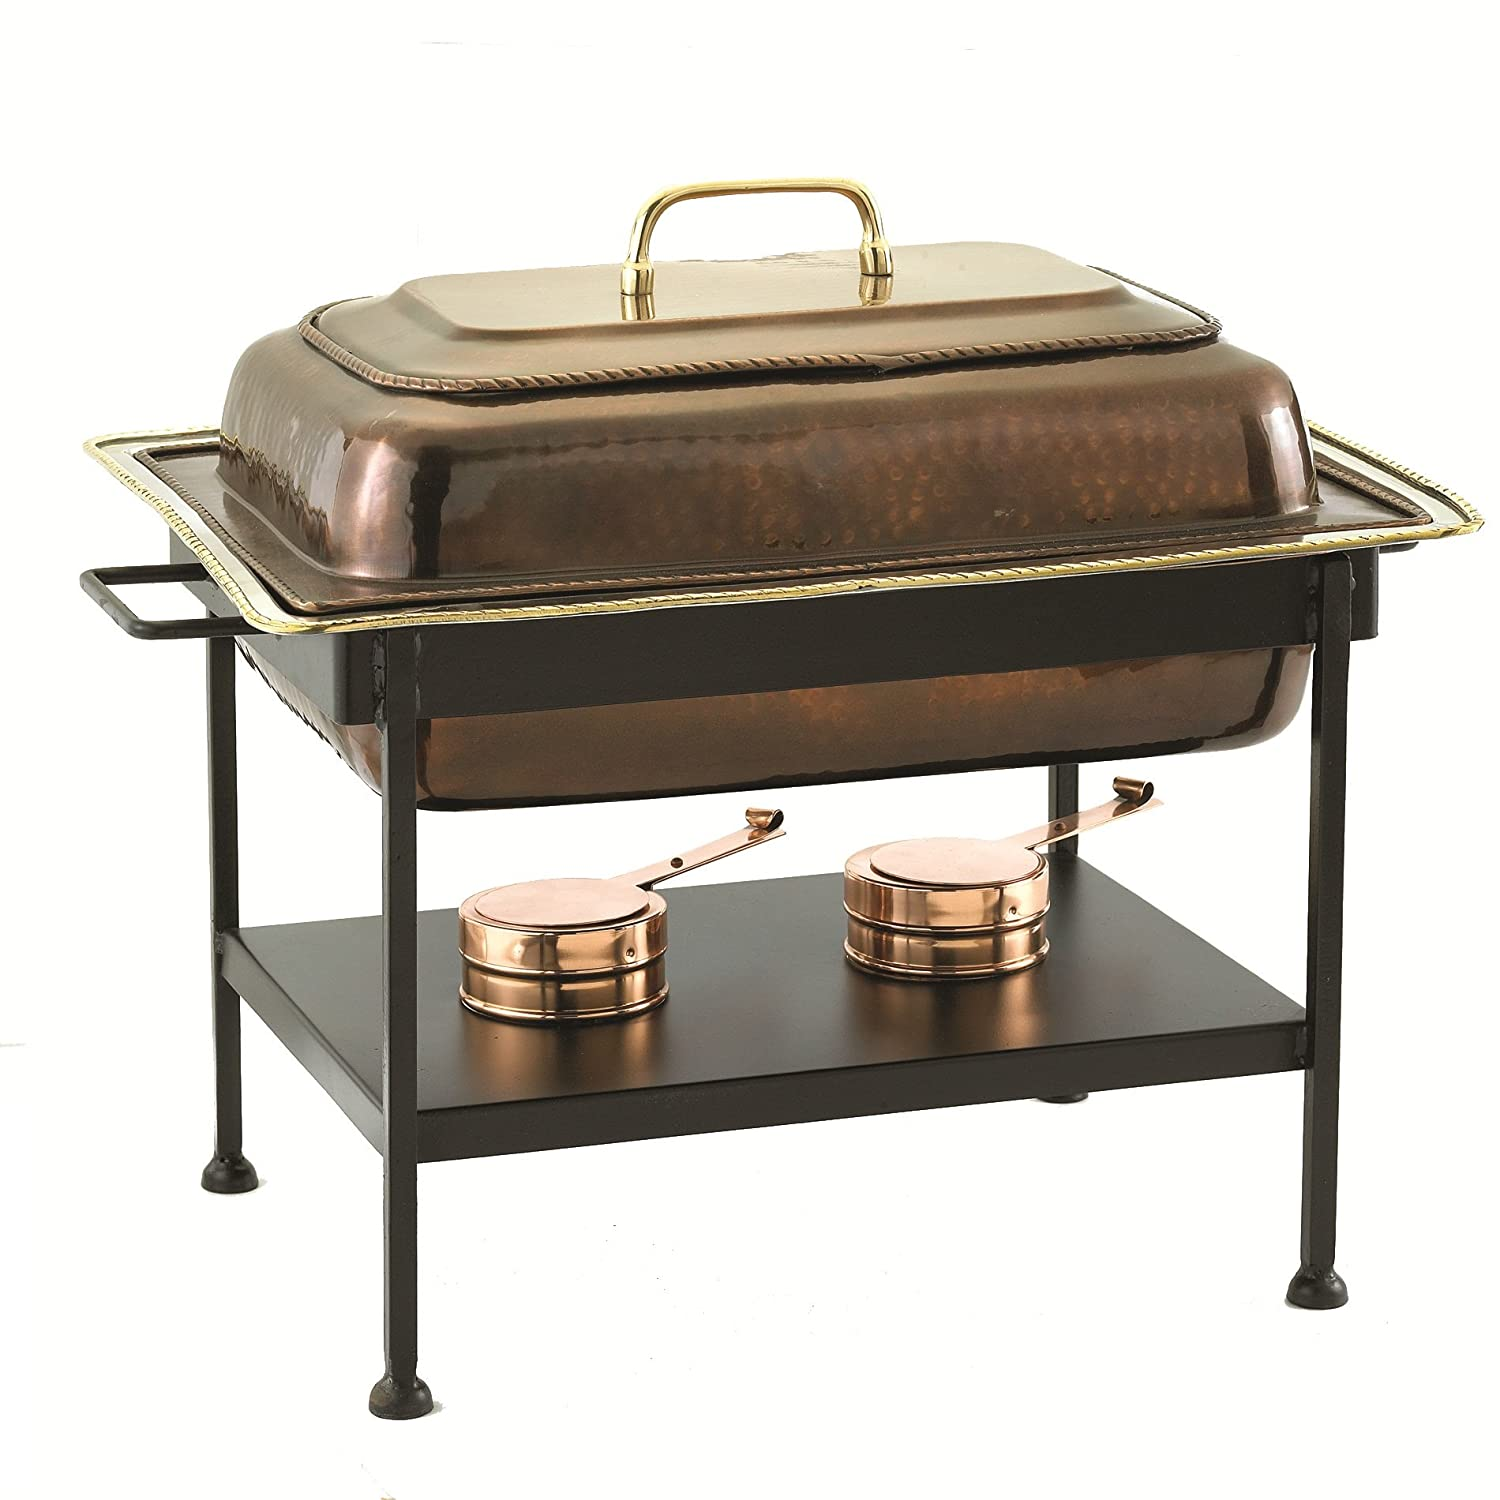 Old Dutch 21-Inch x16-Inch x19-Inch Rect Antique Copper Chafing Dish, 8 Quintal 842